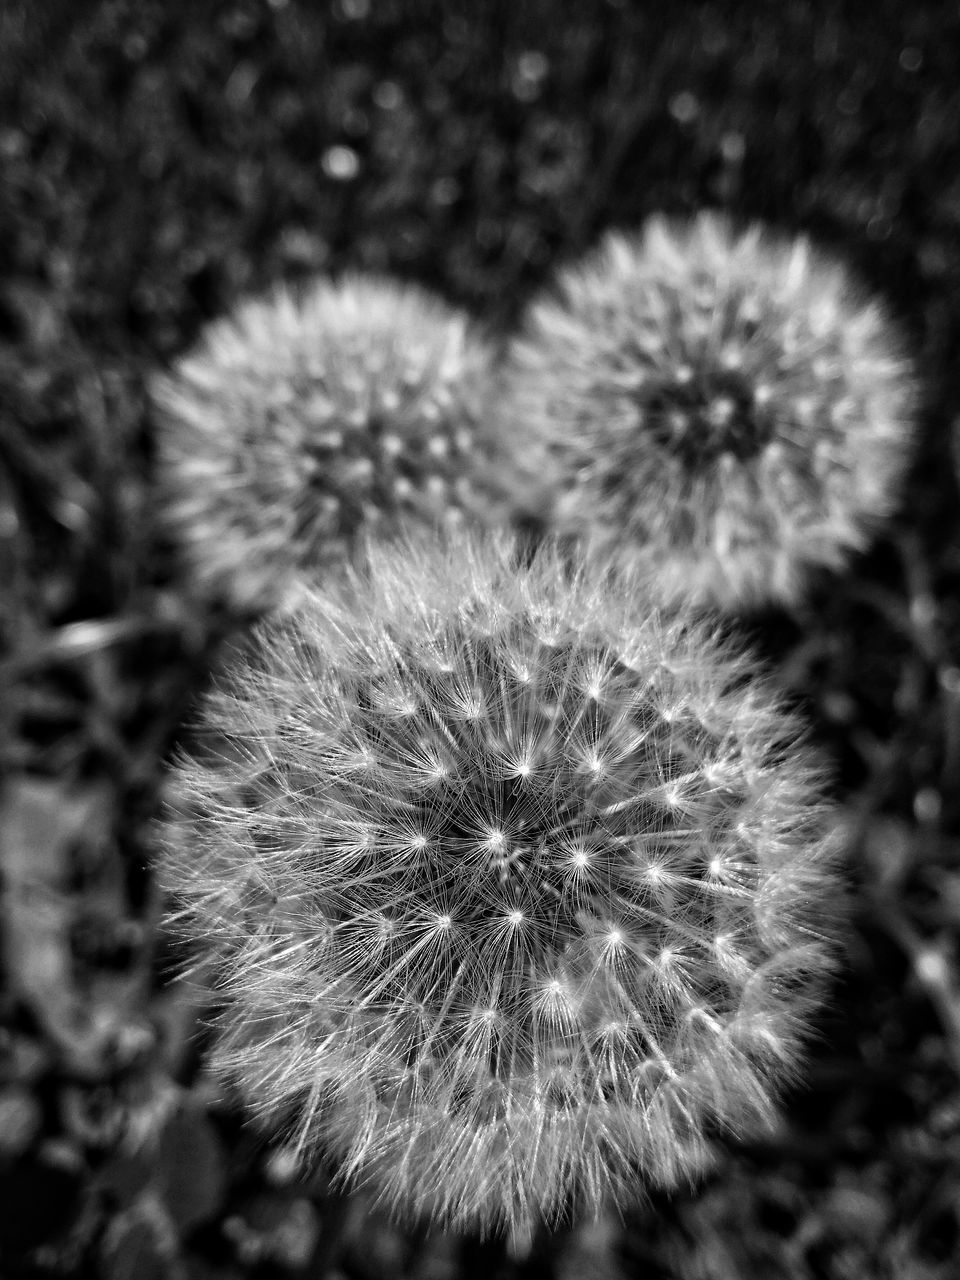 flower, dandelion, fragility, softness, nature, flower head, plant, growth, close-up, uncultivated, beauty in nature, freshness, no people, outdoors, day